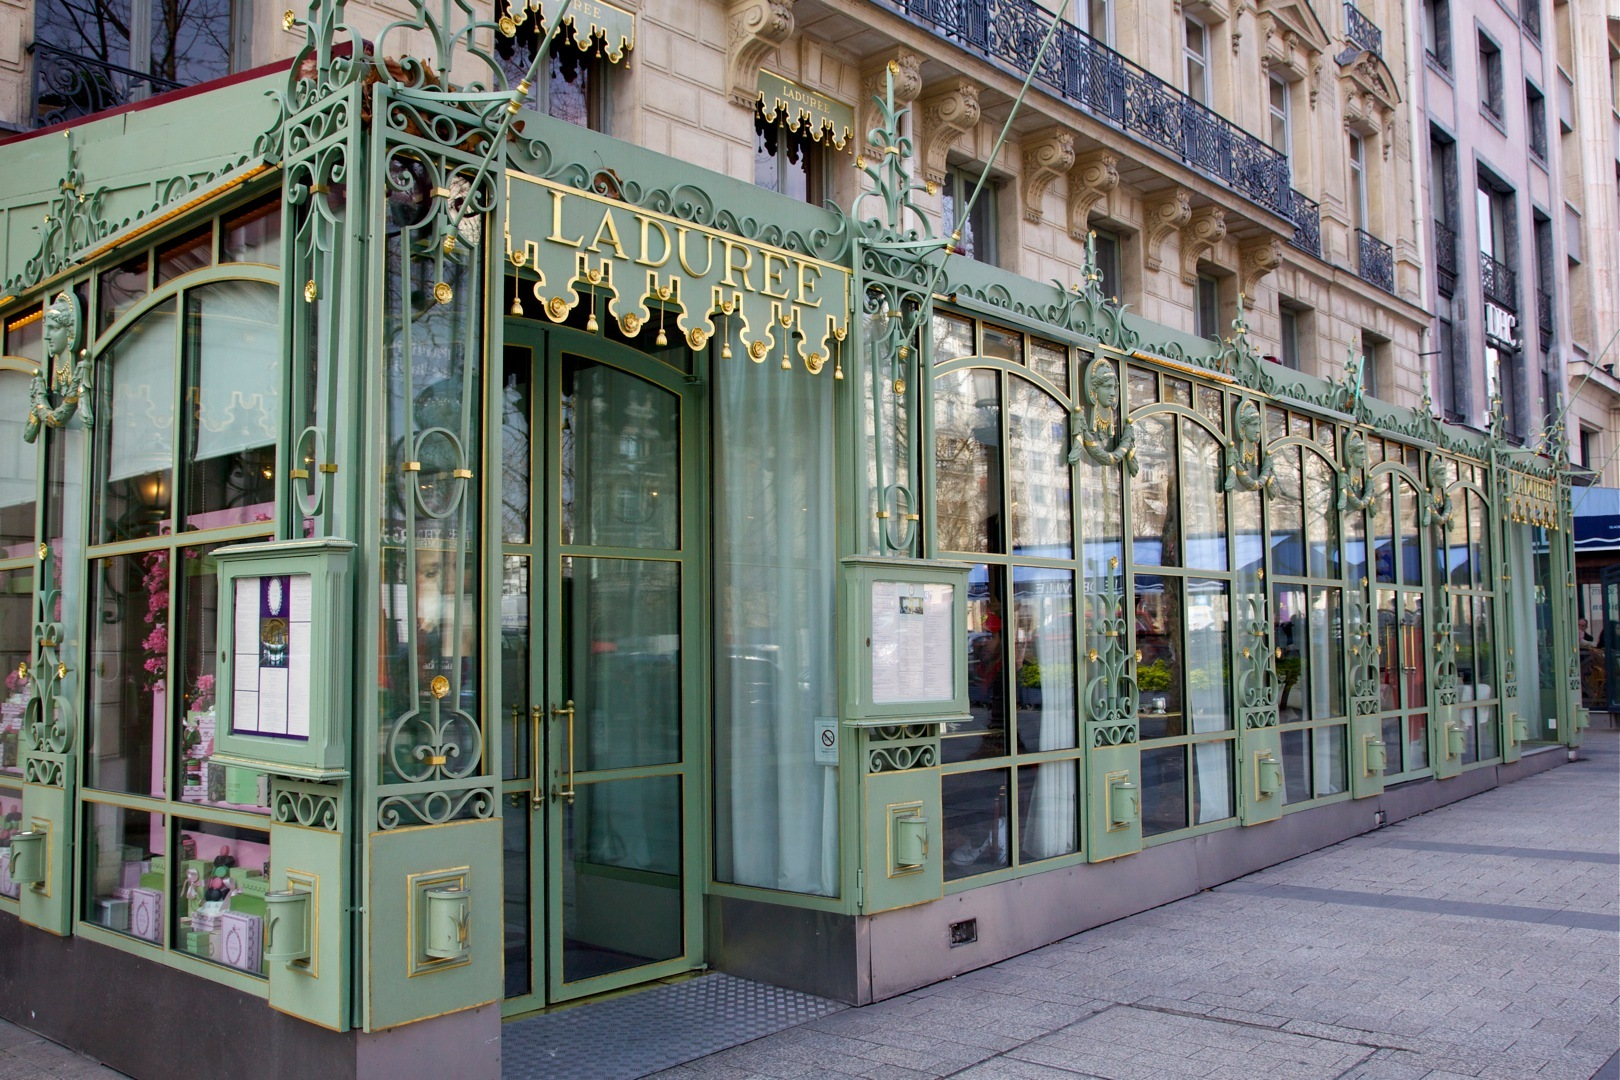 The Most Instagramable Places in Paris the most instagramable places in paris The Most Instagramable Places in Paris laduree 1